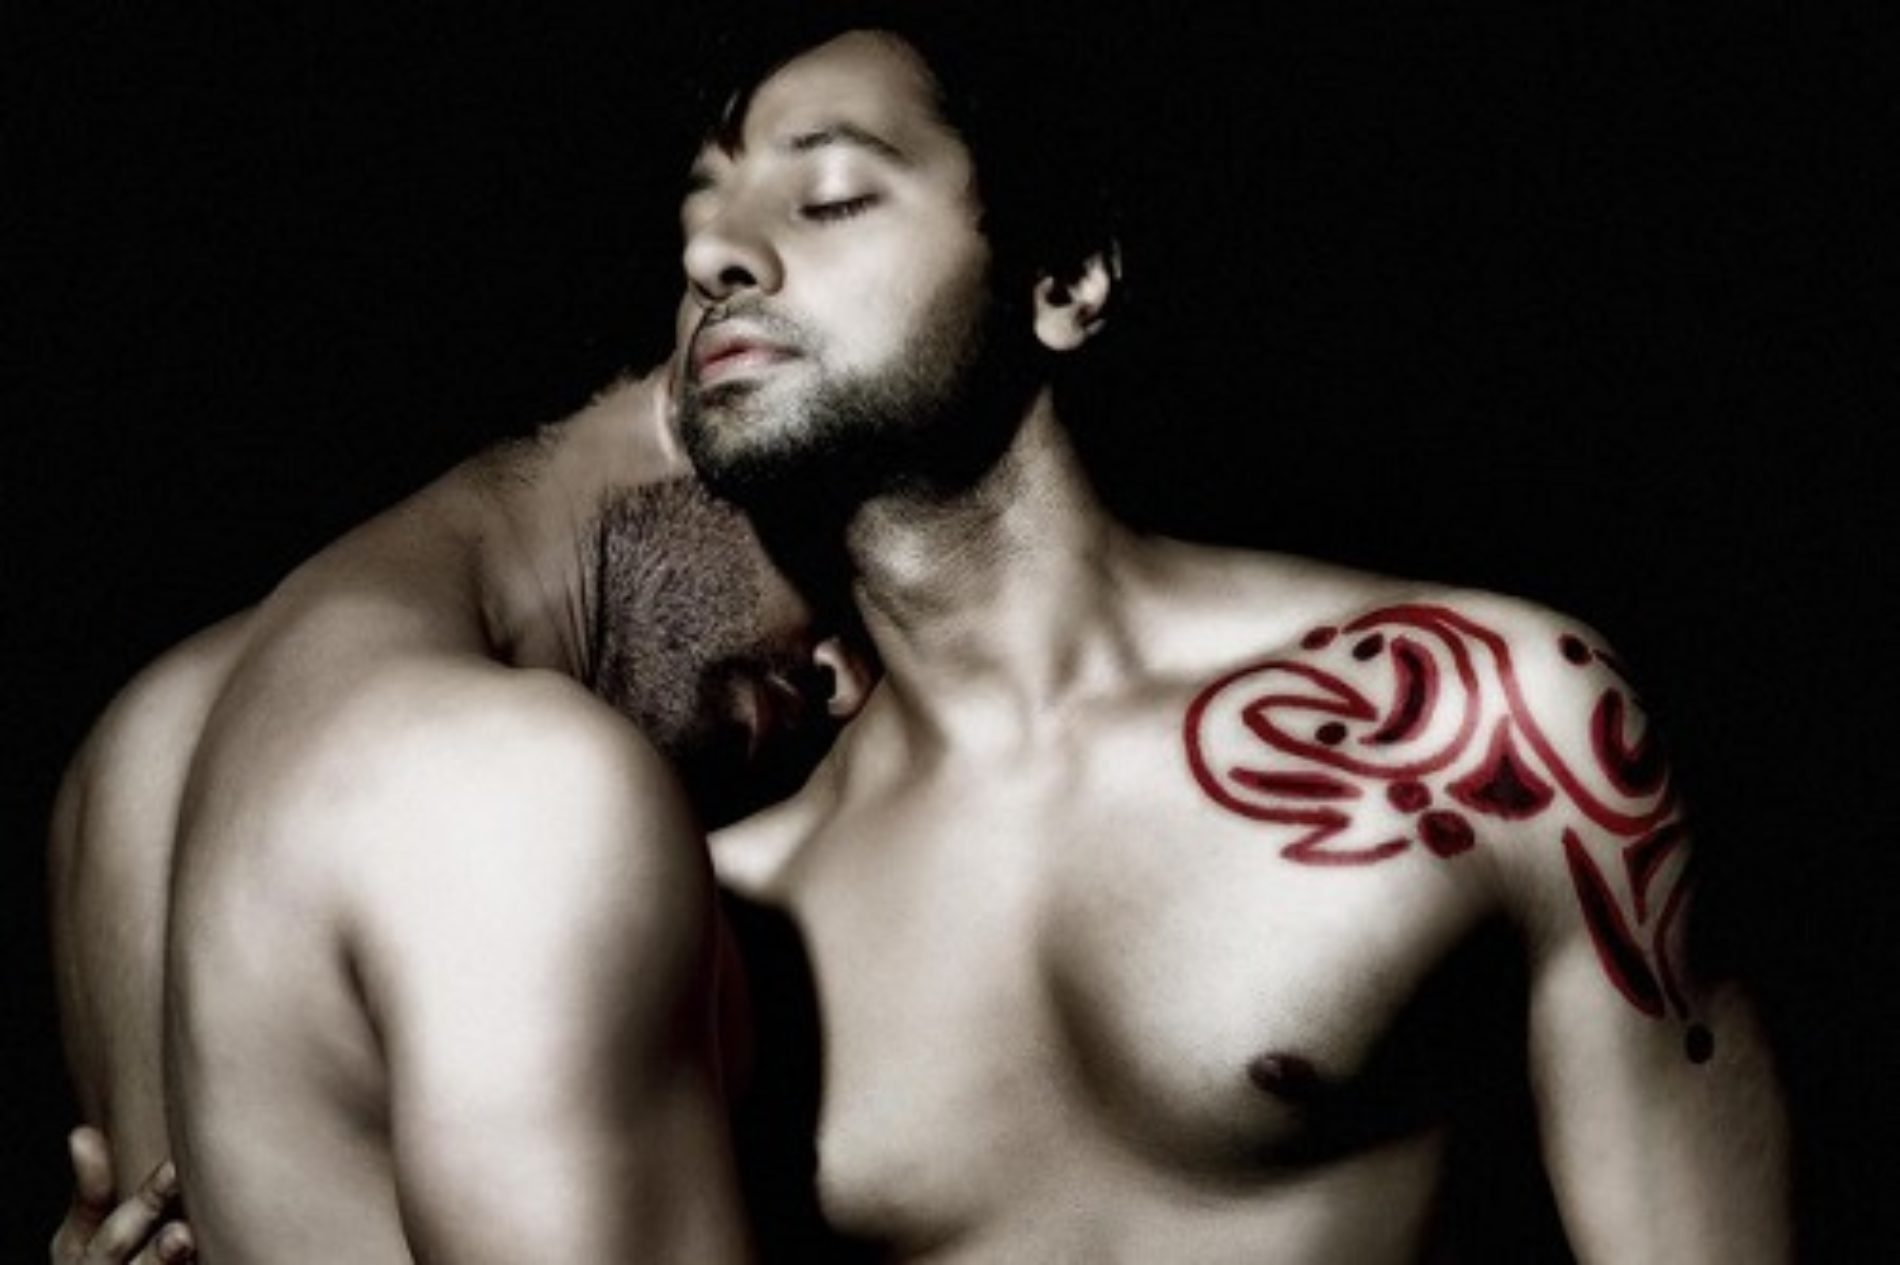 What The Married Gay Indian Had To Say About His Marriage And Sexuality